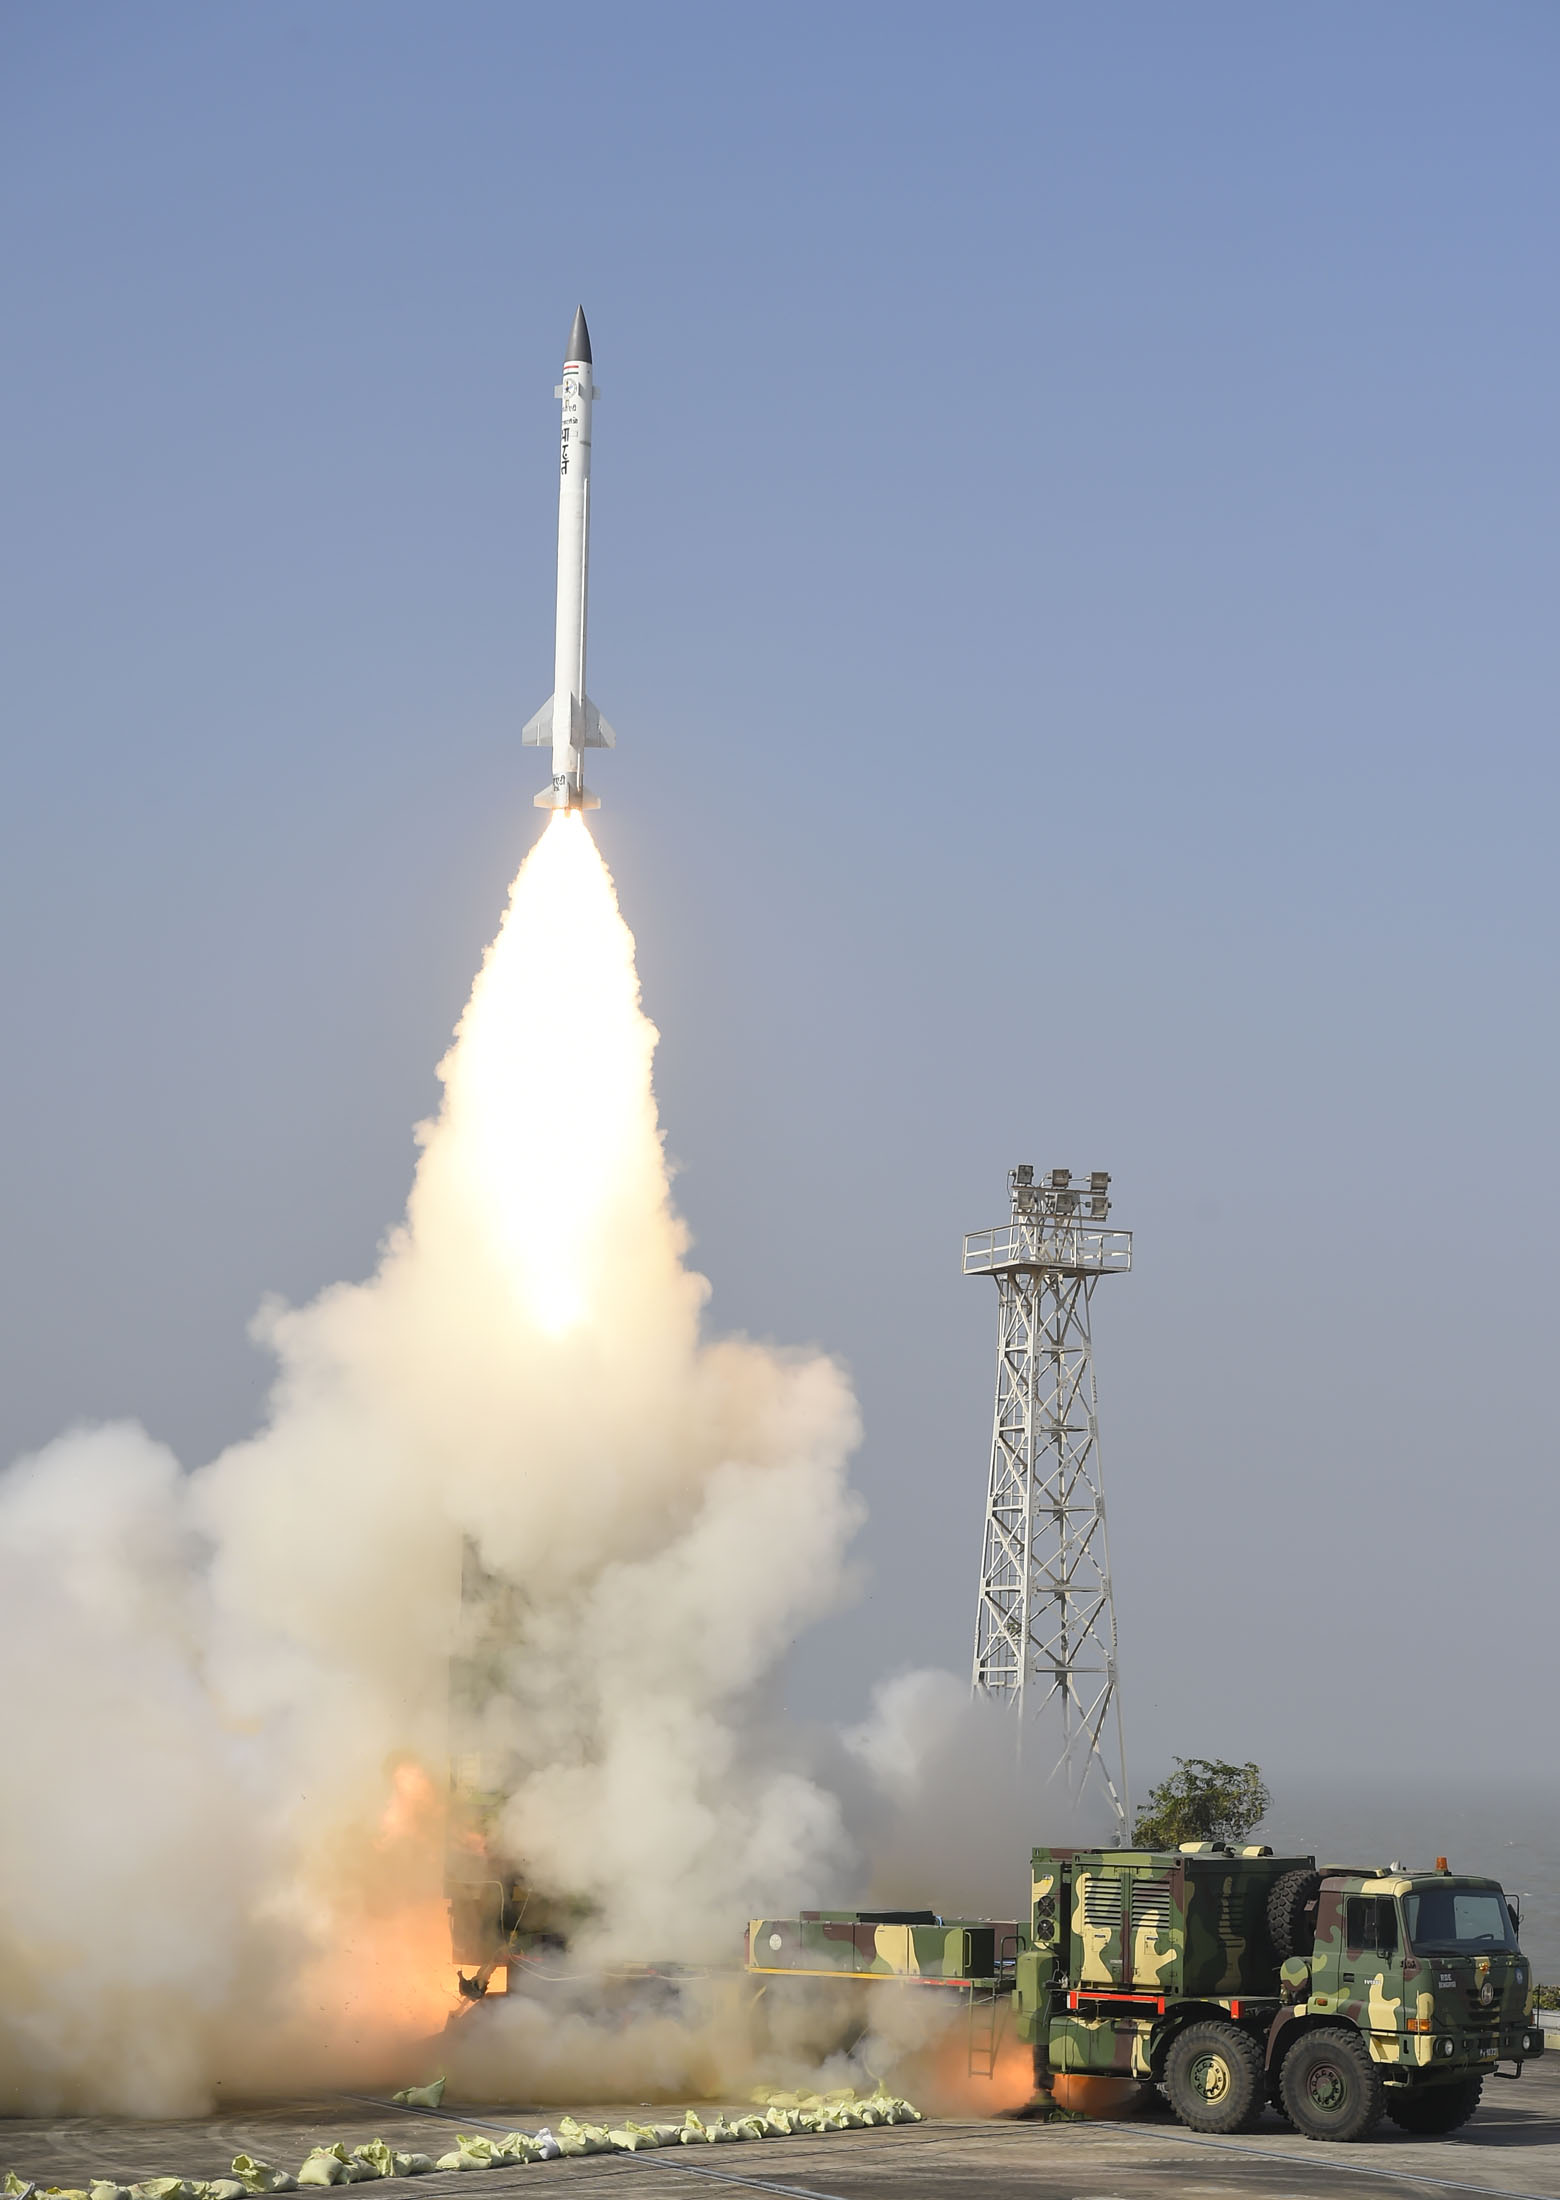 The Ballistic Missile Defence (BMD) System of Defence Research and Development Organisation (DRDO) successfully launched from Dr. Abdul Kalam Island off the coast of Odisha on December 28, 2017.